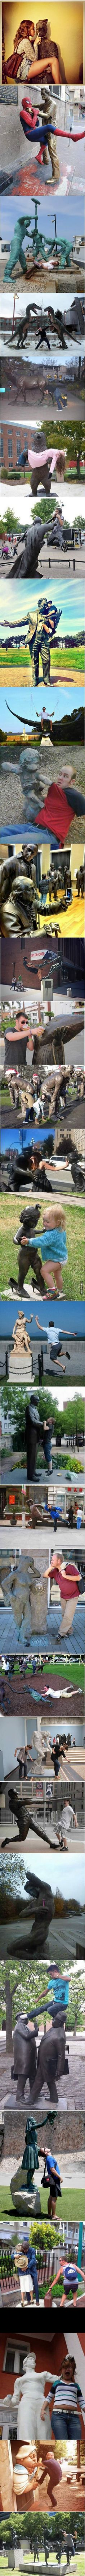 Fun with statues - Fun with statues Webfail – Fail Images and Fail Videos - Really Funny Memes, Stupid Funny, Haha Funny, Funny Cute, Hilarious, Funny Stuff, Fun With Statues, Greek Statues, Angel Statues